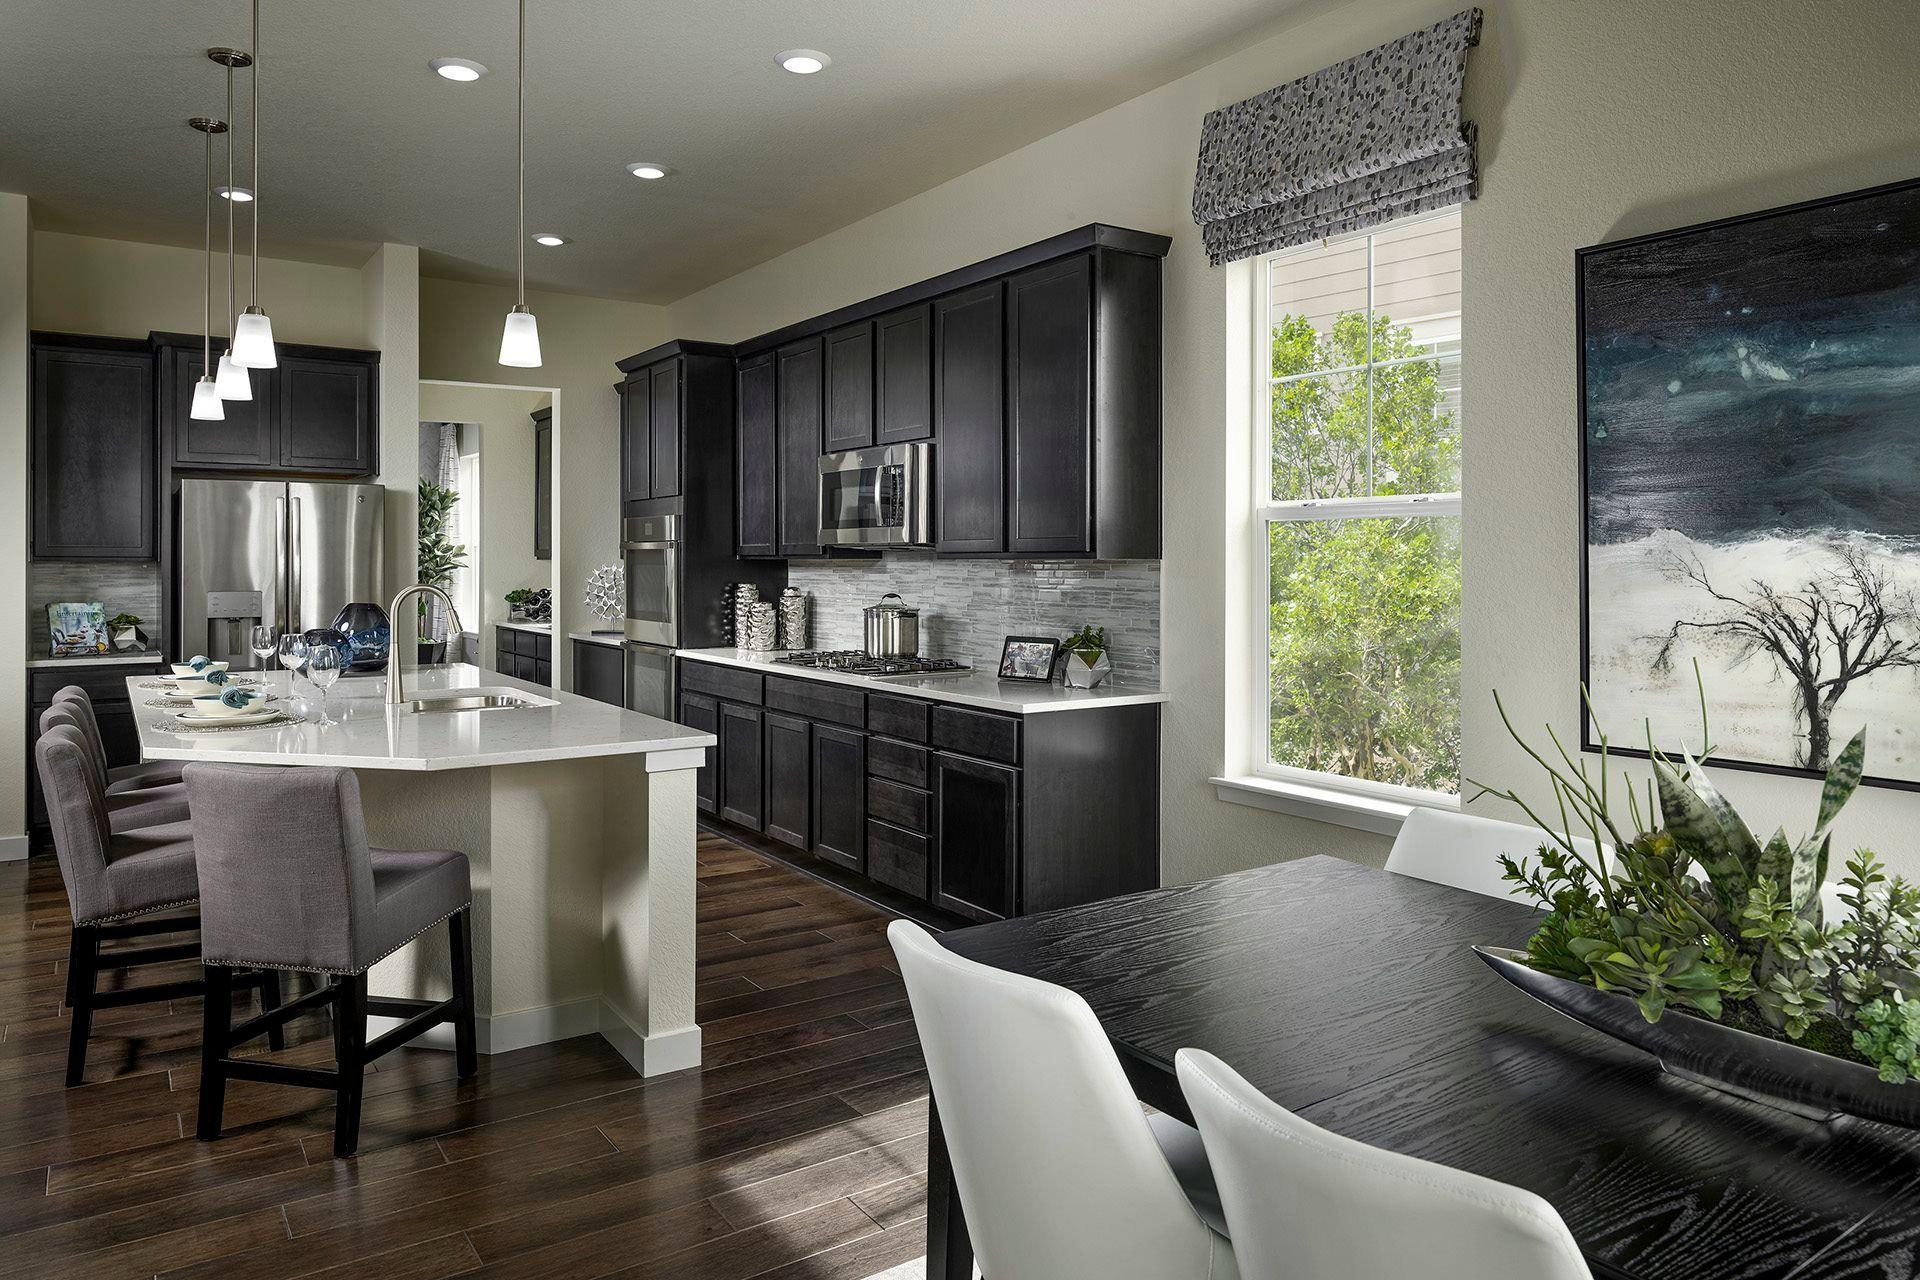 Kitchen featured in the Gable By Lennar in Denver, CO